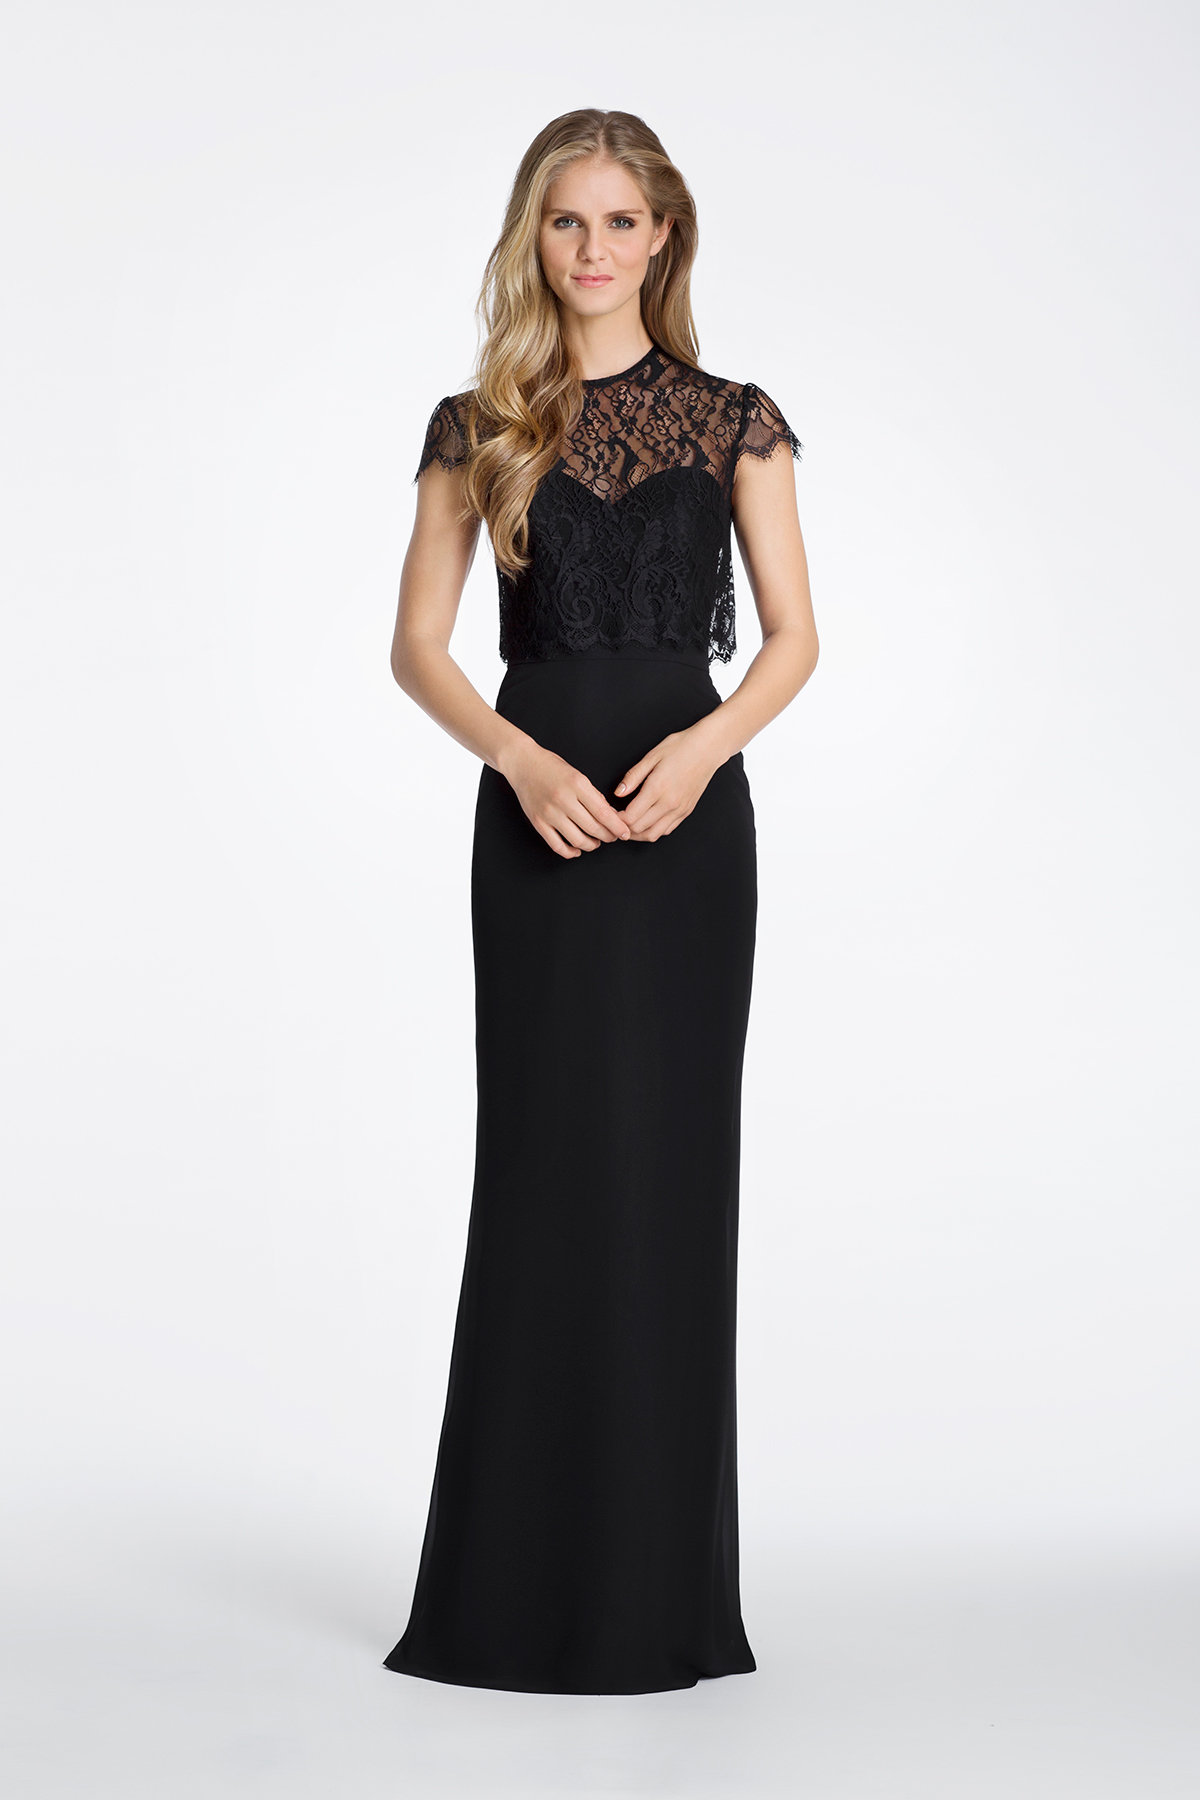 Mother of the Bride dress by Hayley Paige in black chiffon and lace